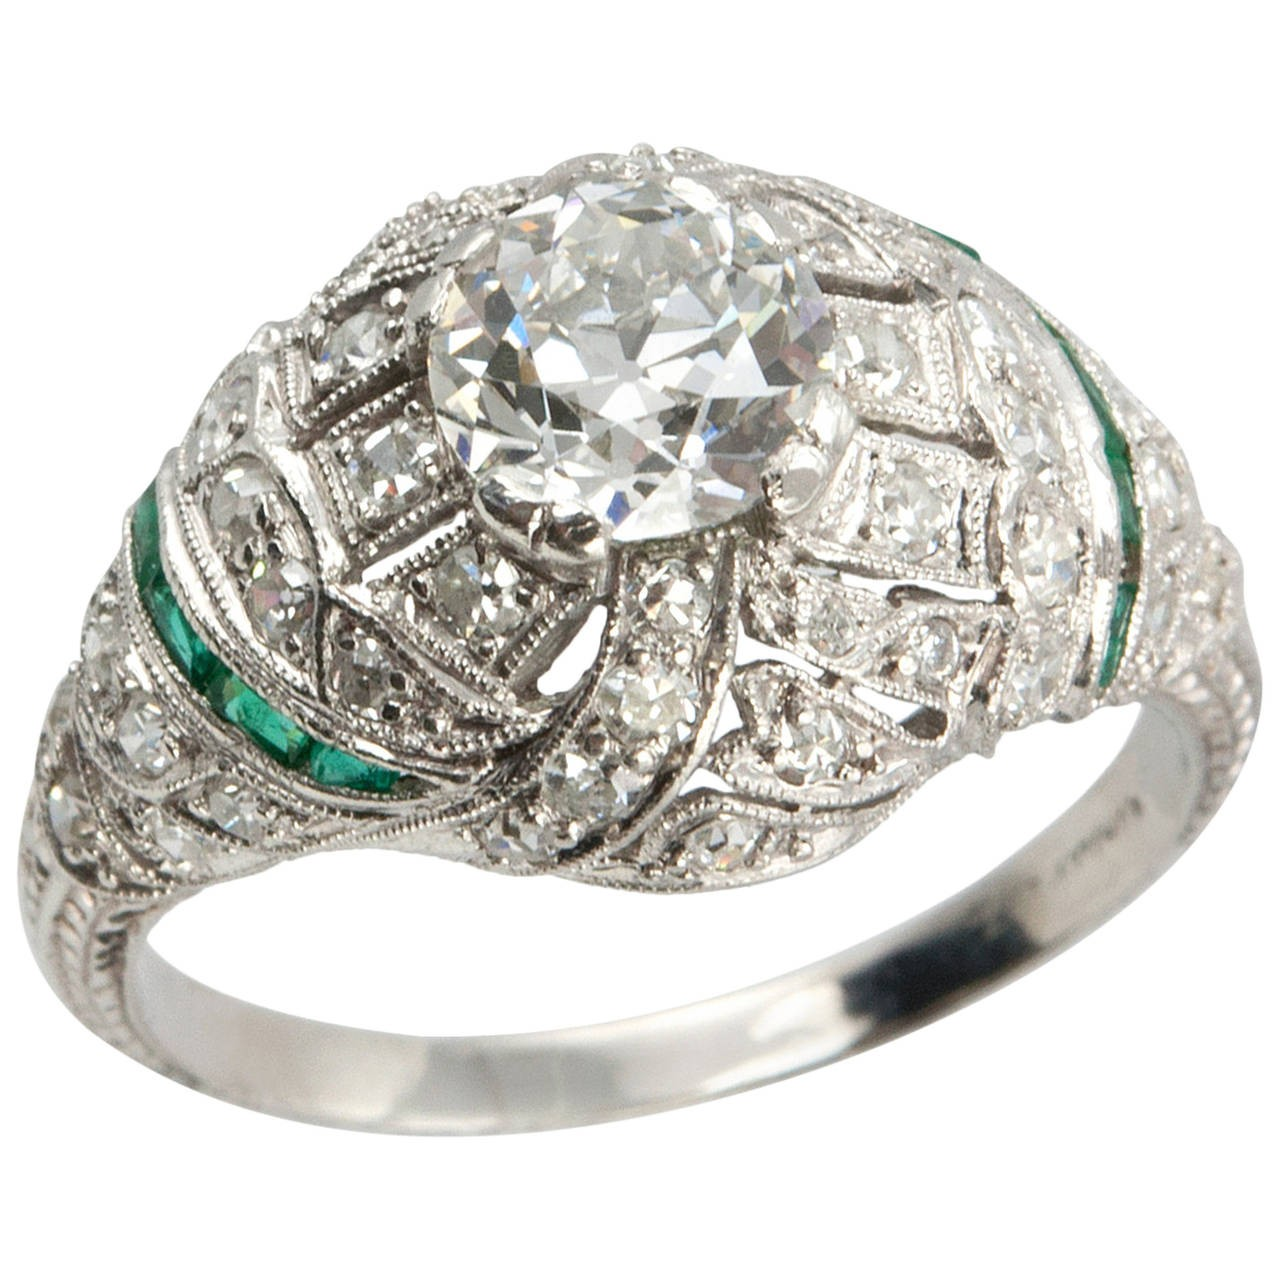 rings engagement baguette unique market ring er diamond mount semi product accented